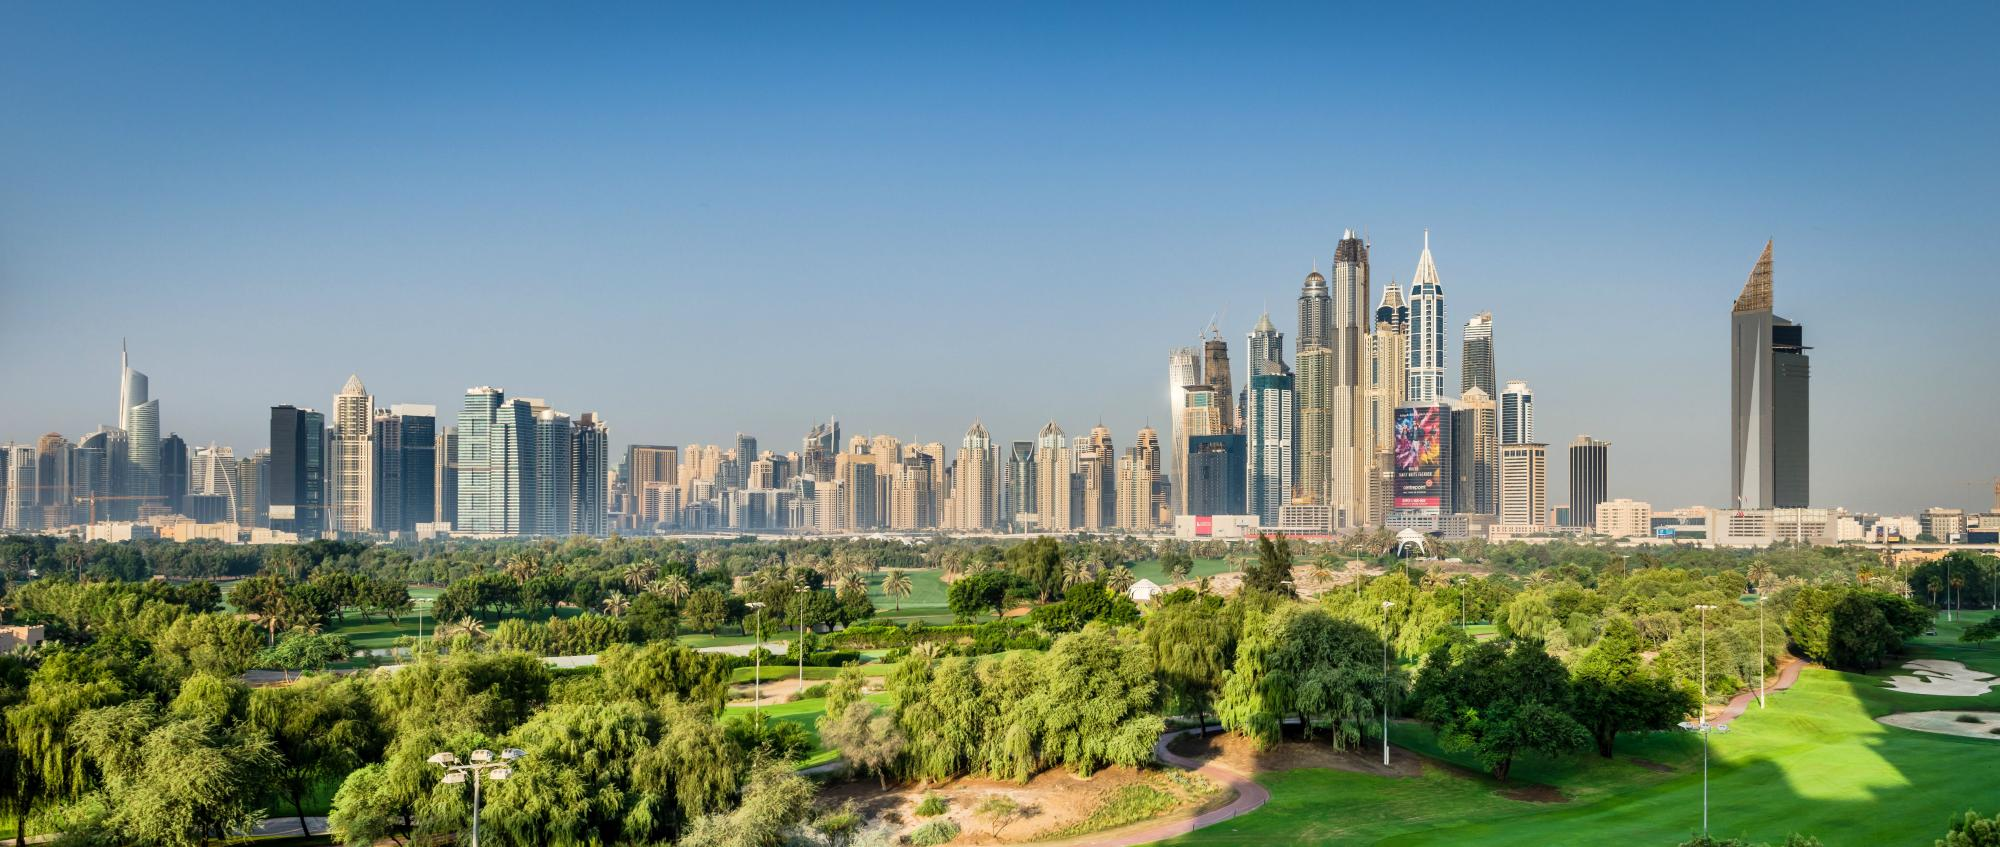 All The Emirates Golf Club's beautiful golf course within staggering Dubai.